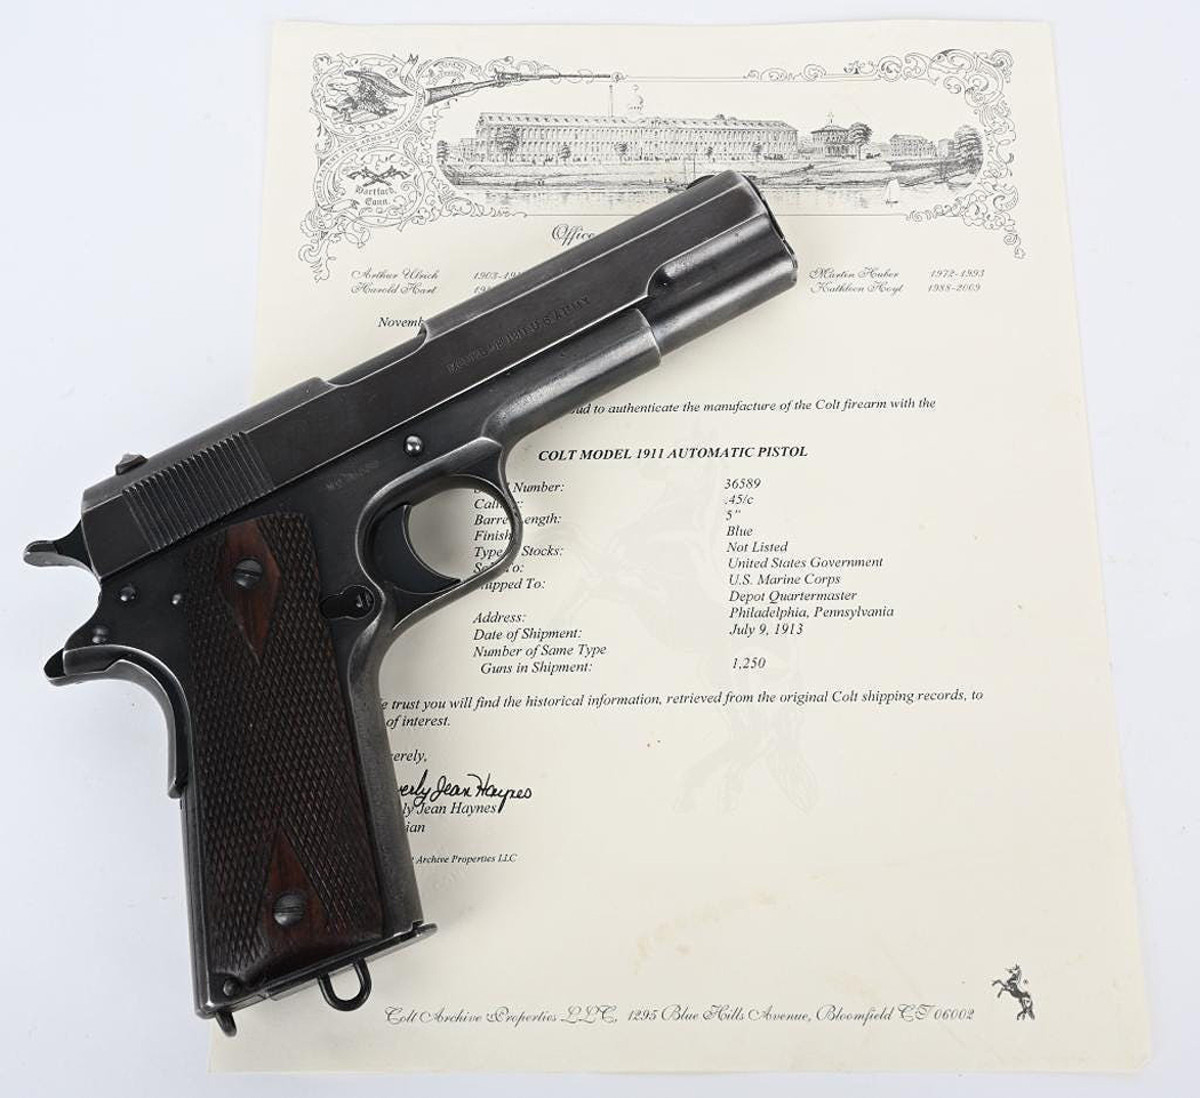 High-condition Colt 1911 with documentation, .45 ACP, one of only 1,250 such pistols shipped to US Marine Corps' Philadelphia depot on July 9, 1913. Stamped 'UNITED STATES PROPERTY' and 'MODEL OF 1911 U.S. ARMY.'